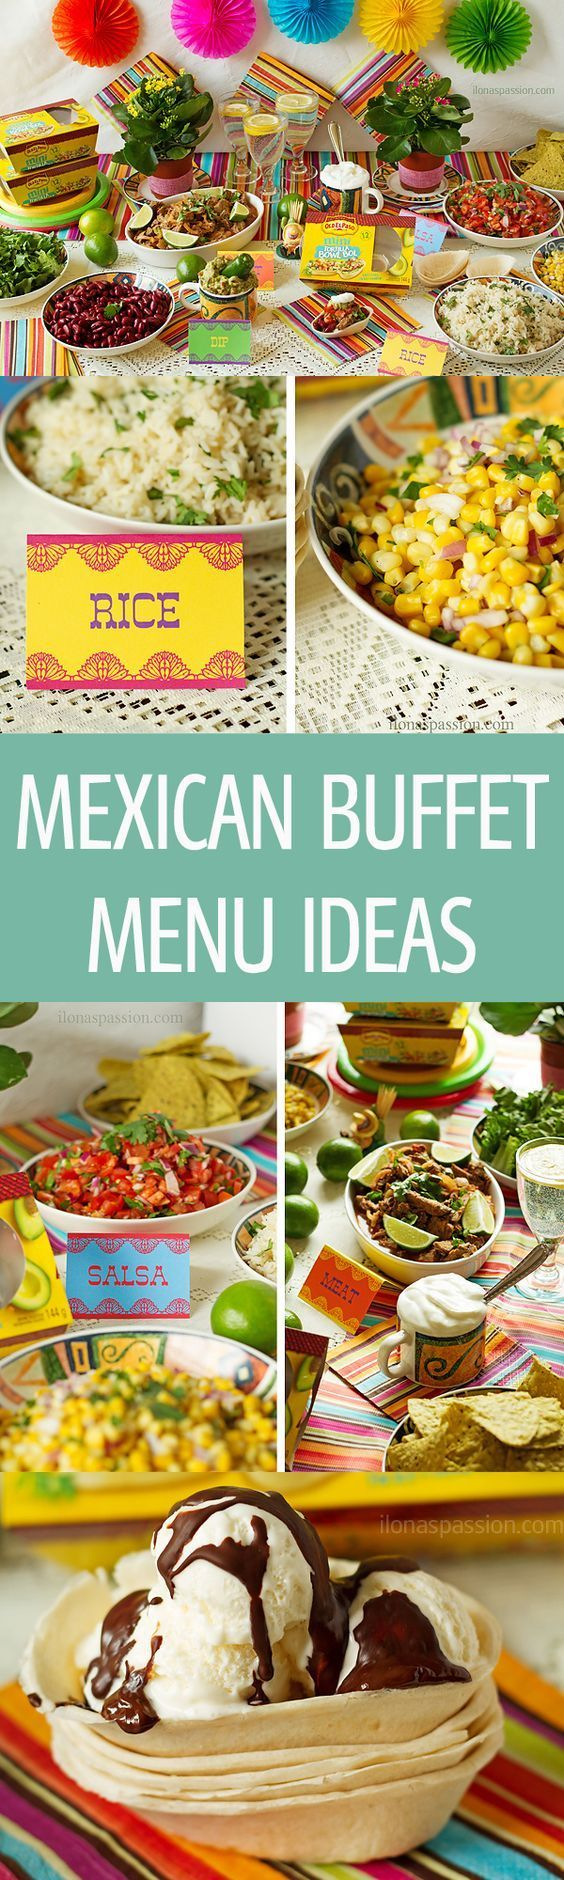 Mexican Buffet Menu Ideas - full Mexican buffet menu ideas with recipes like barbacoa, lime cilantro rice, avocado dip, beans, tortilla bowls, corn and homemade salsa. Free Mexican printable table tents included! by http://ilonaspassion.com I /ilonaspassi